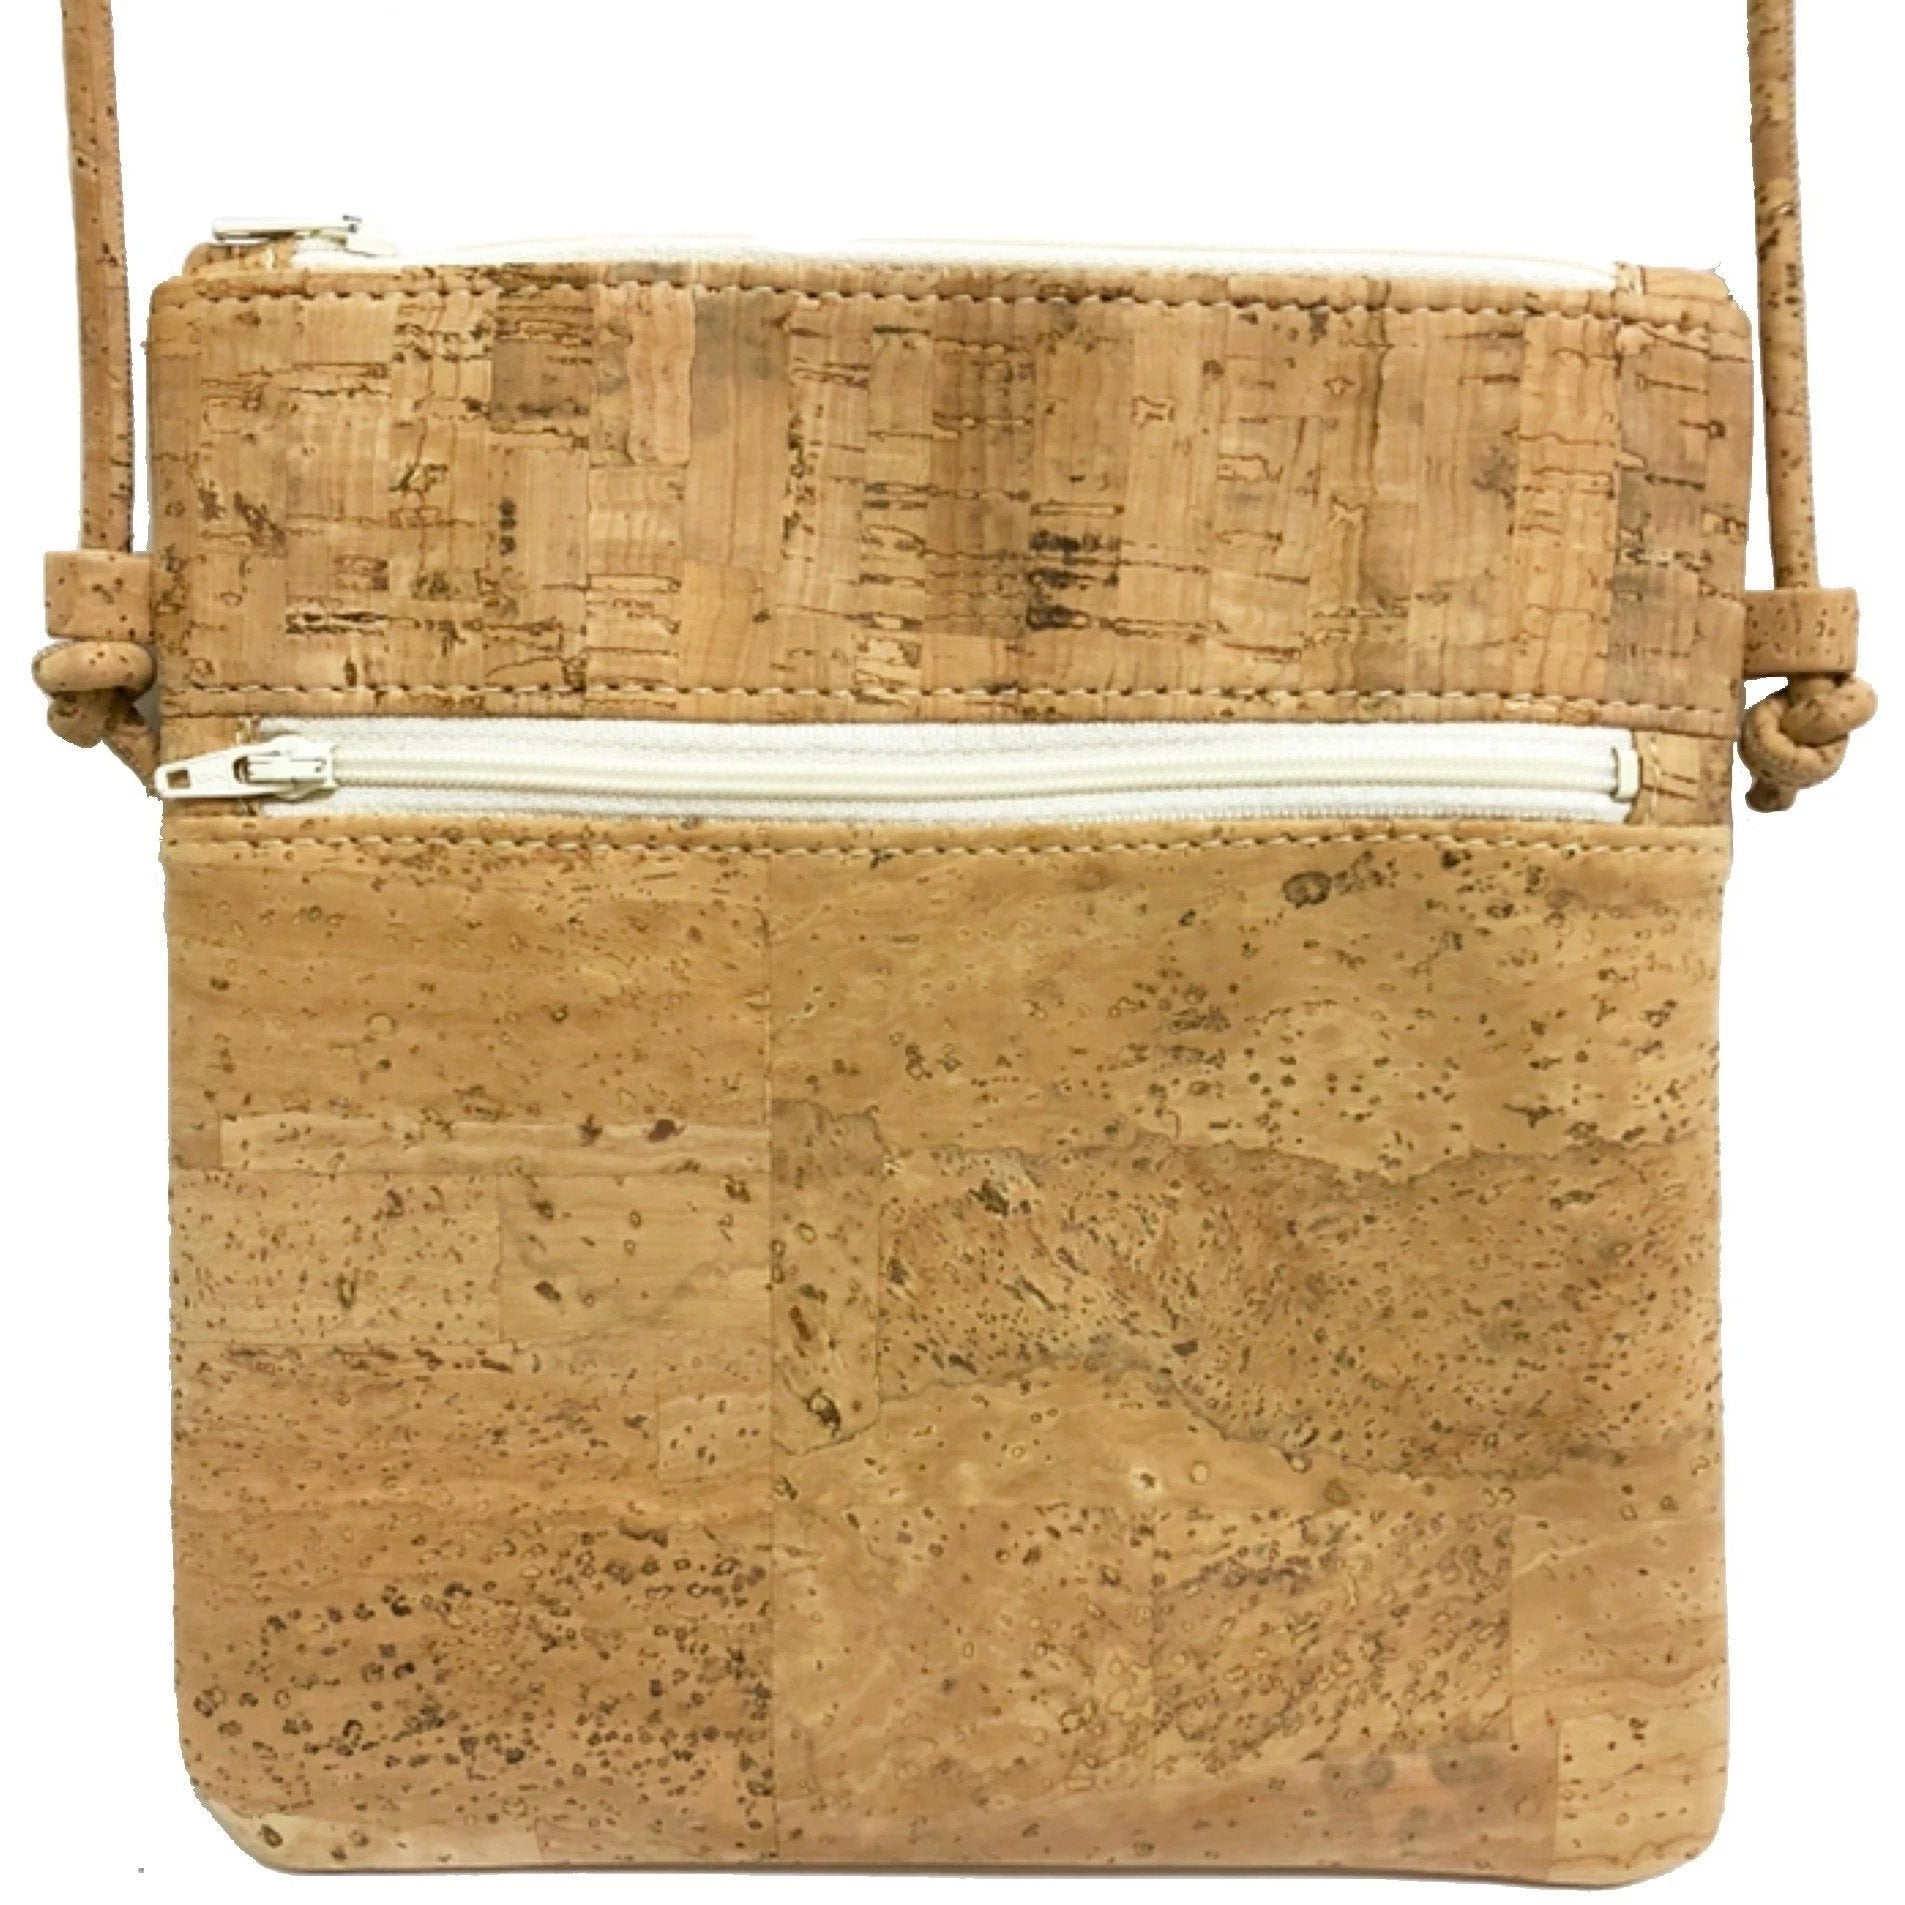 queork cork double zipper natural